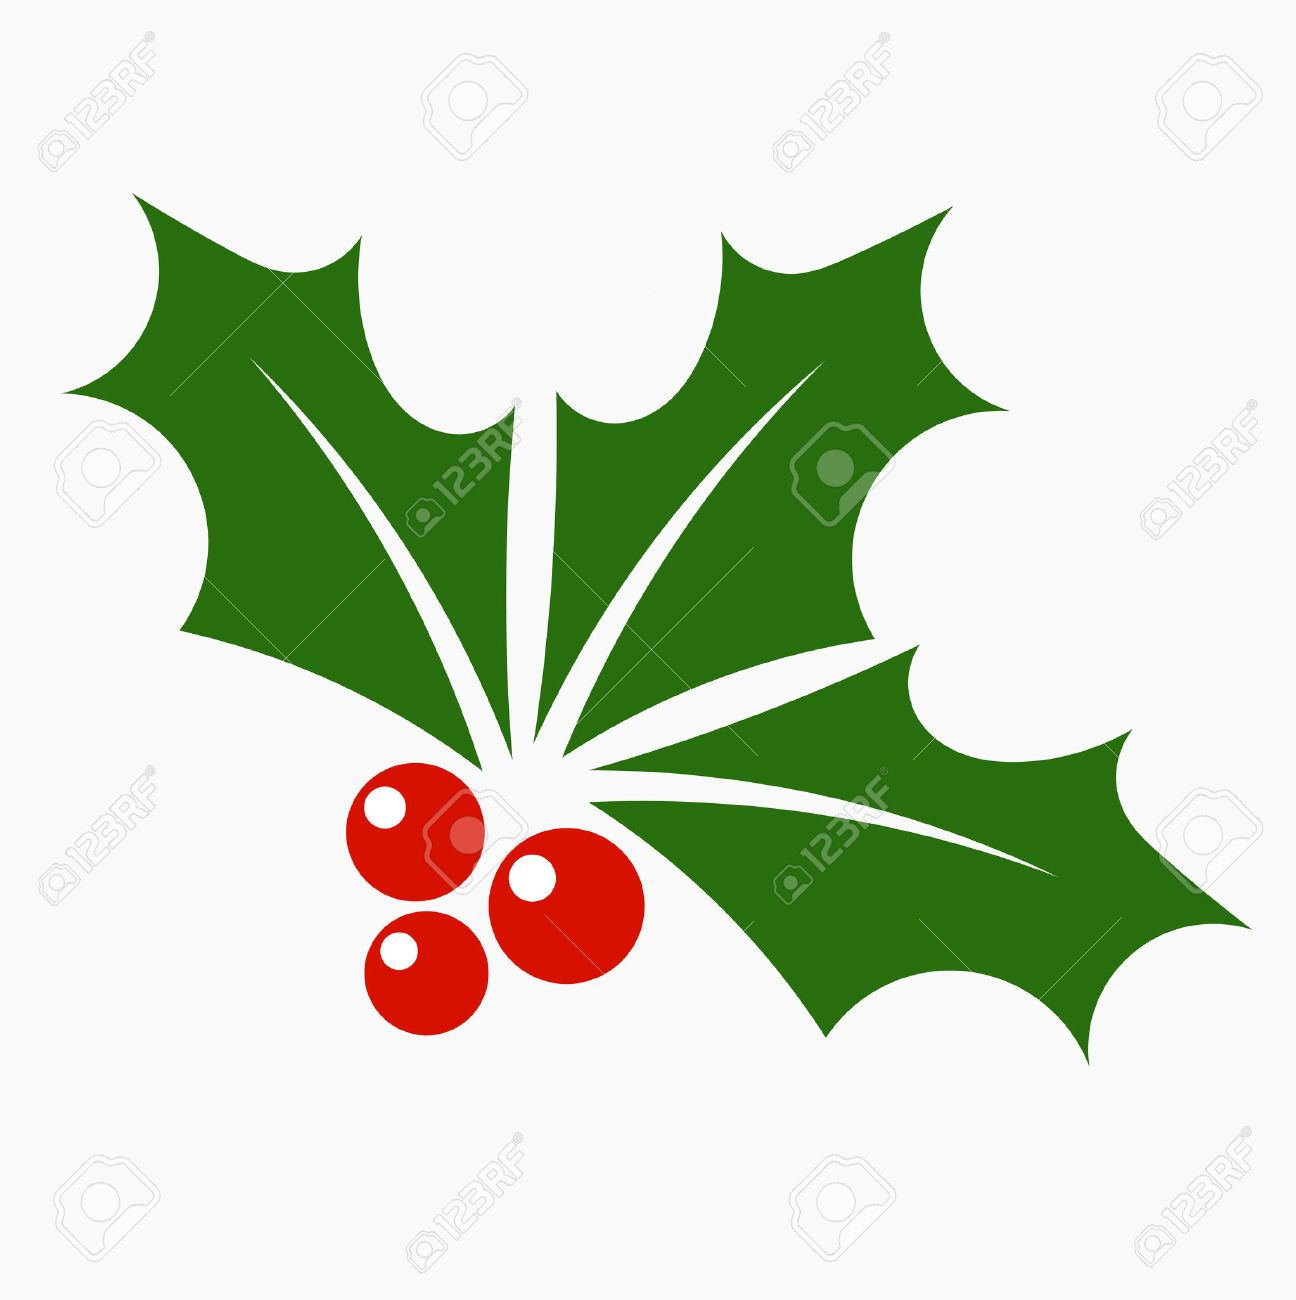 Holly berry icon. Christmas symbol vector illustration - 30522036